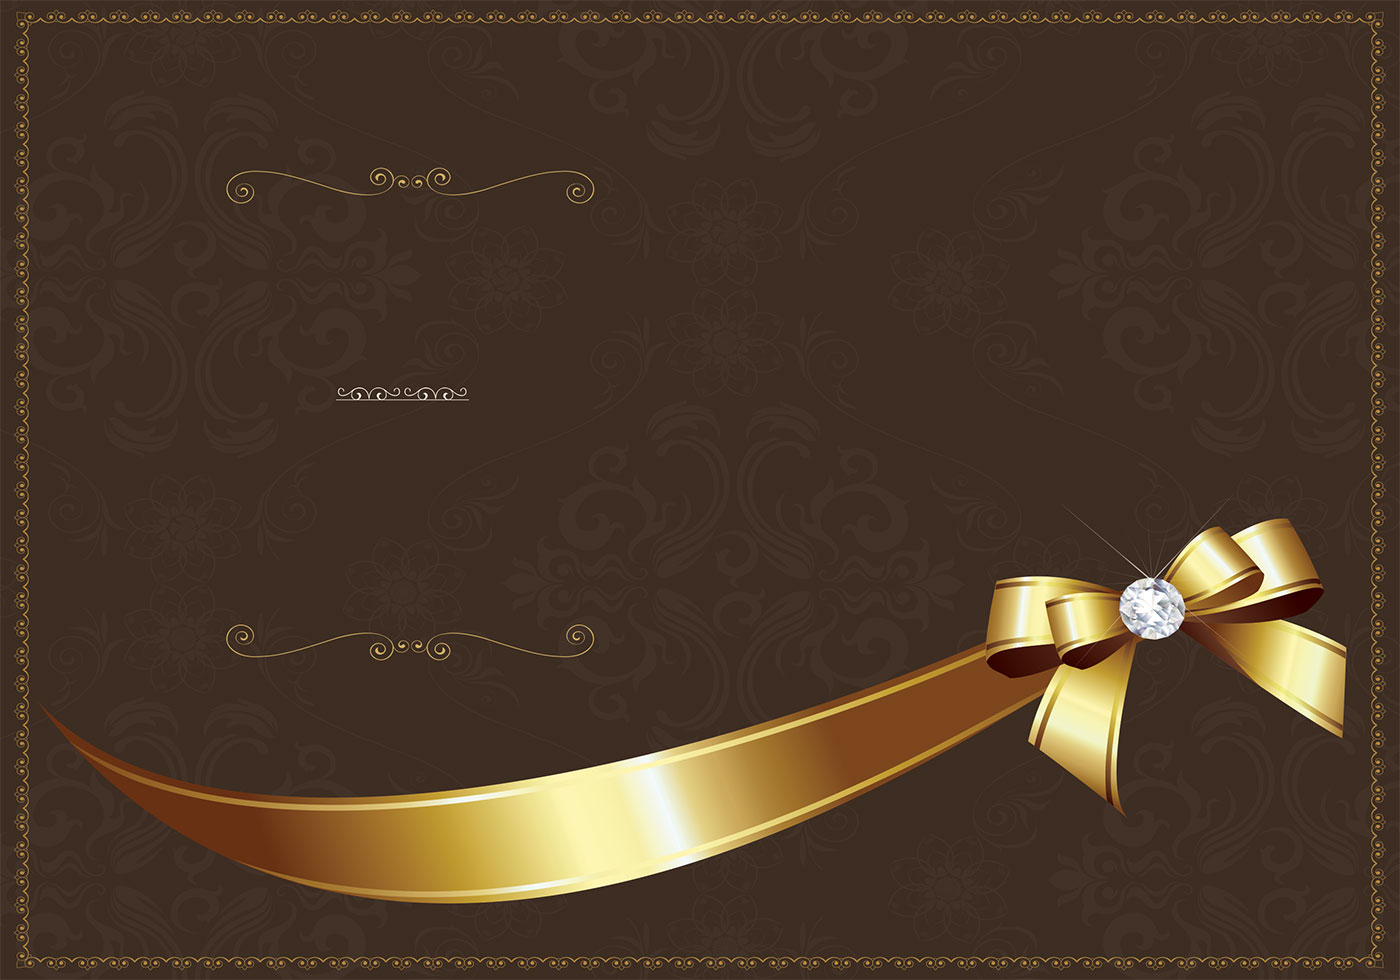 Photoshop Templates: Golden Luxury Invitation PSD Template